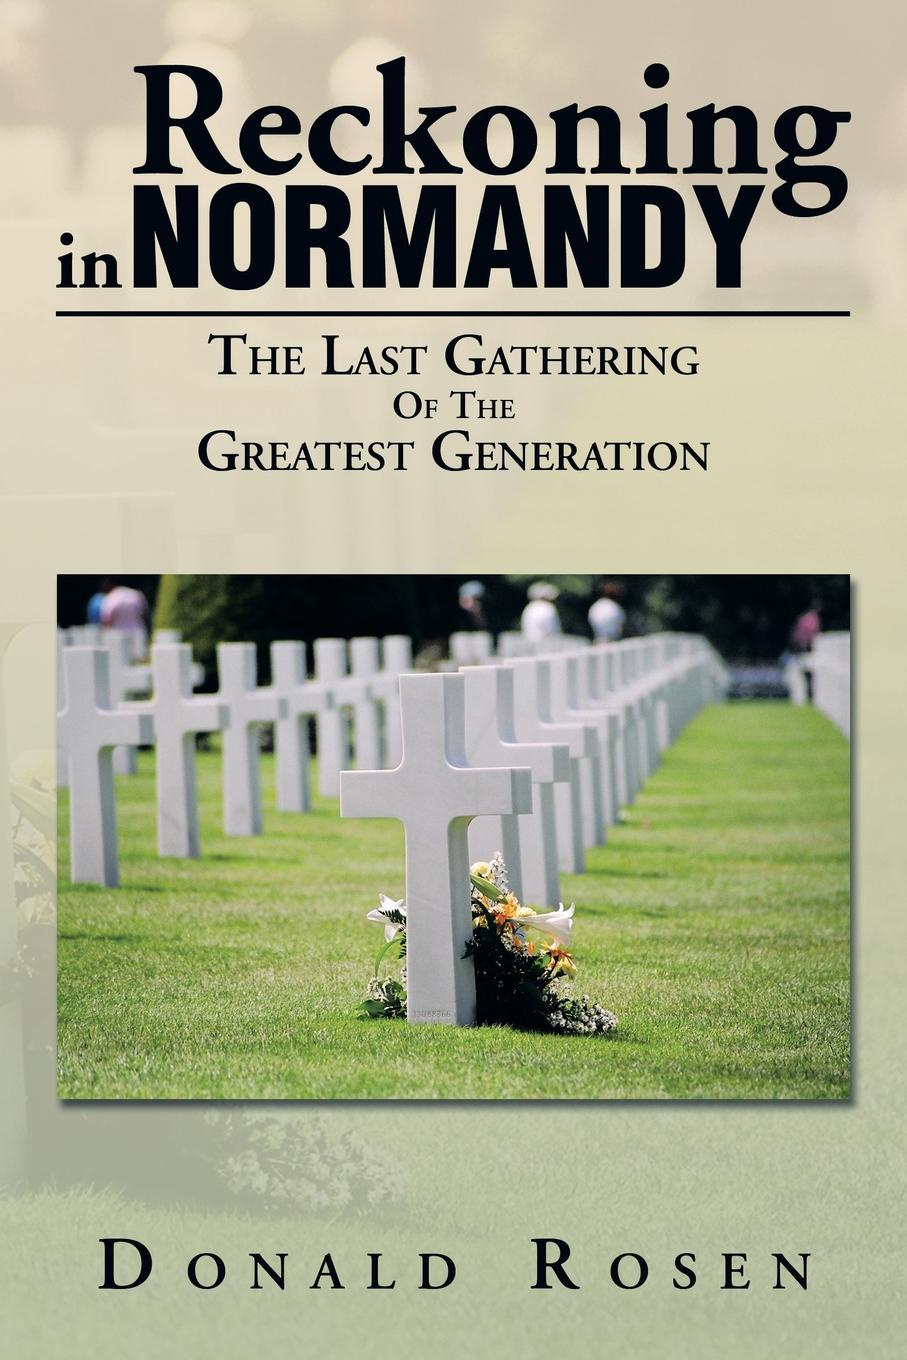 Donald Rosen Reckoning in Normandy. The Last Gathering of the Greatest Generation